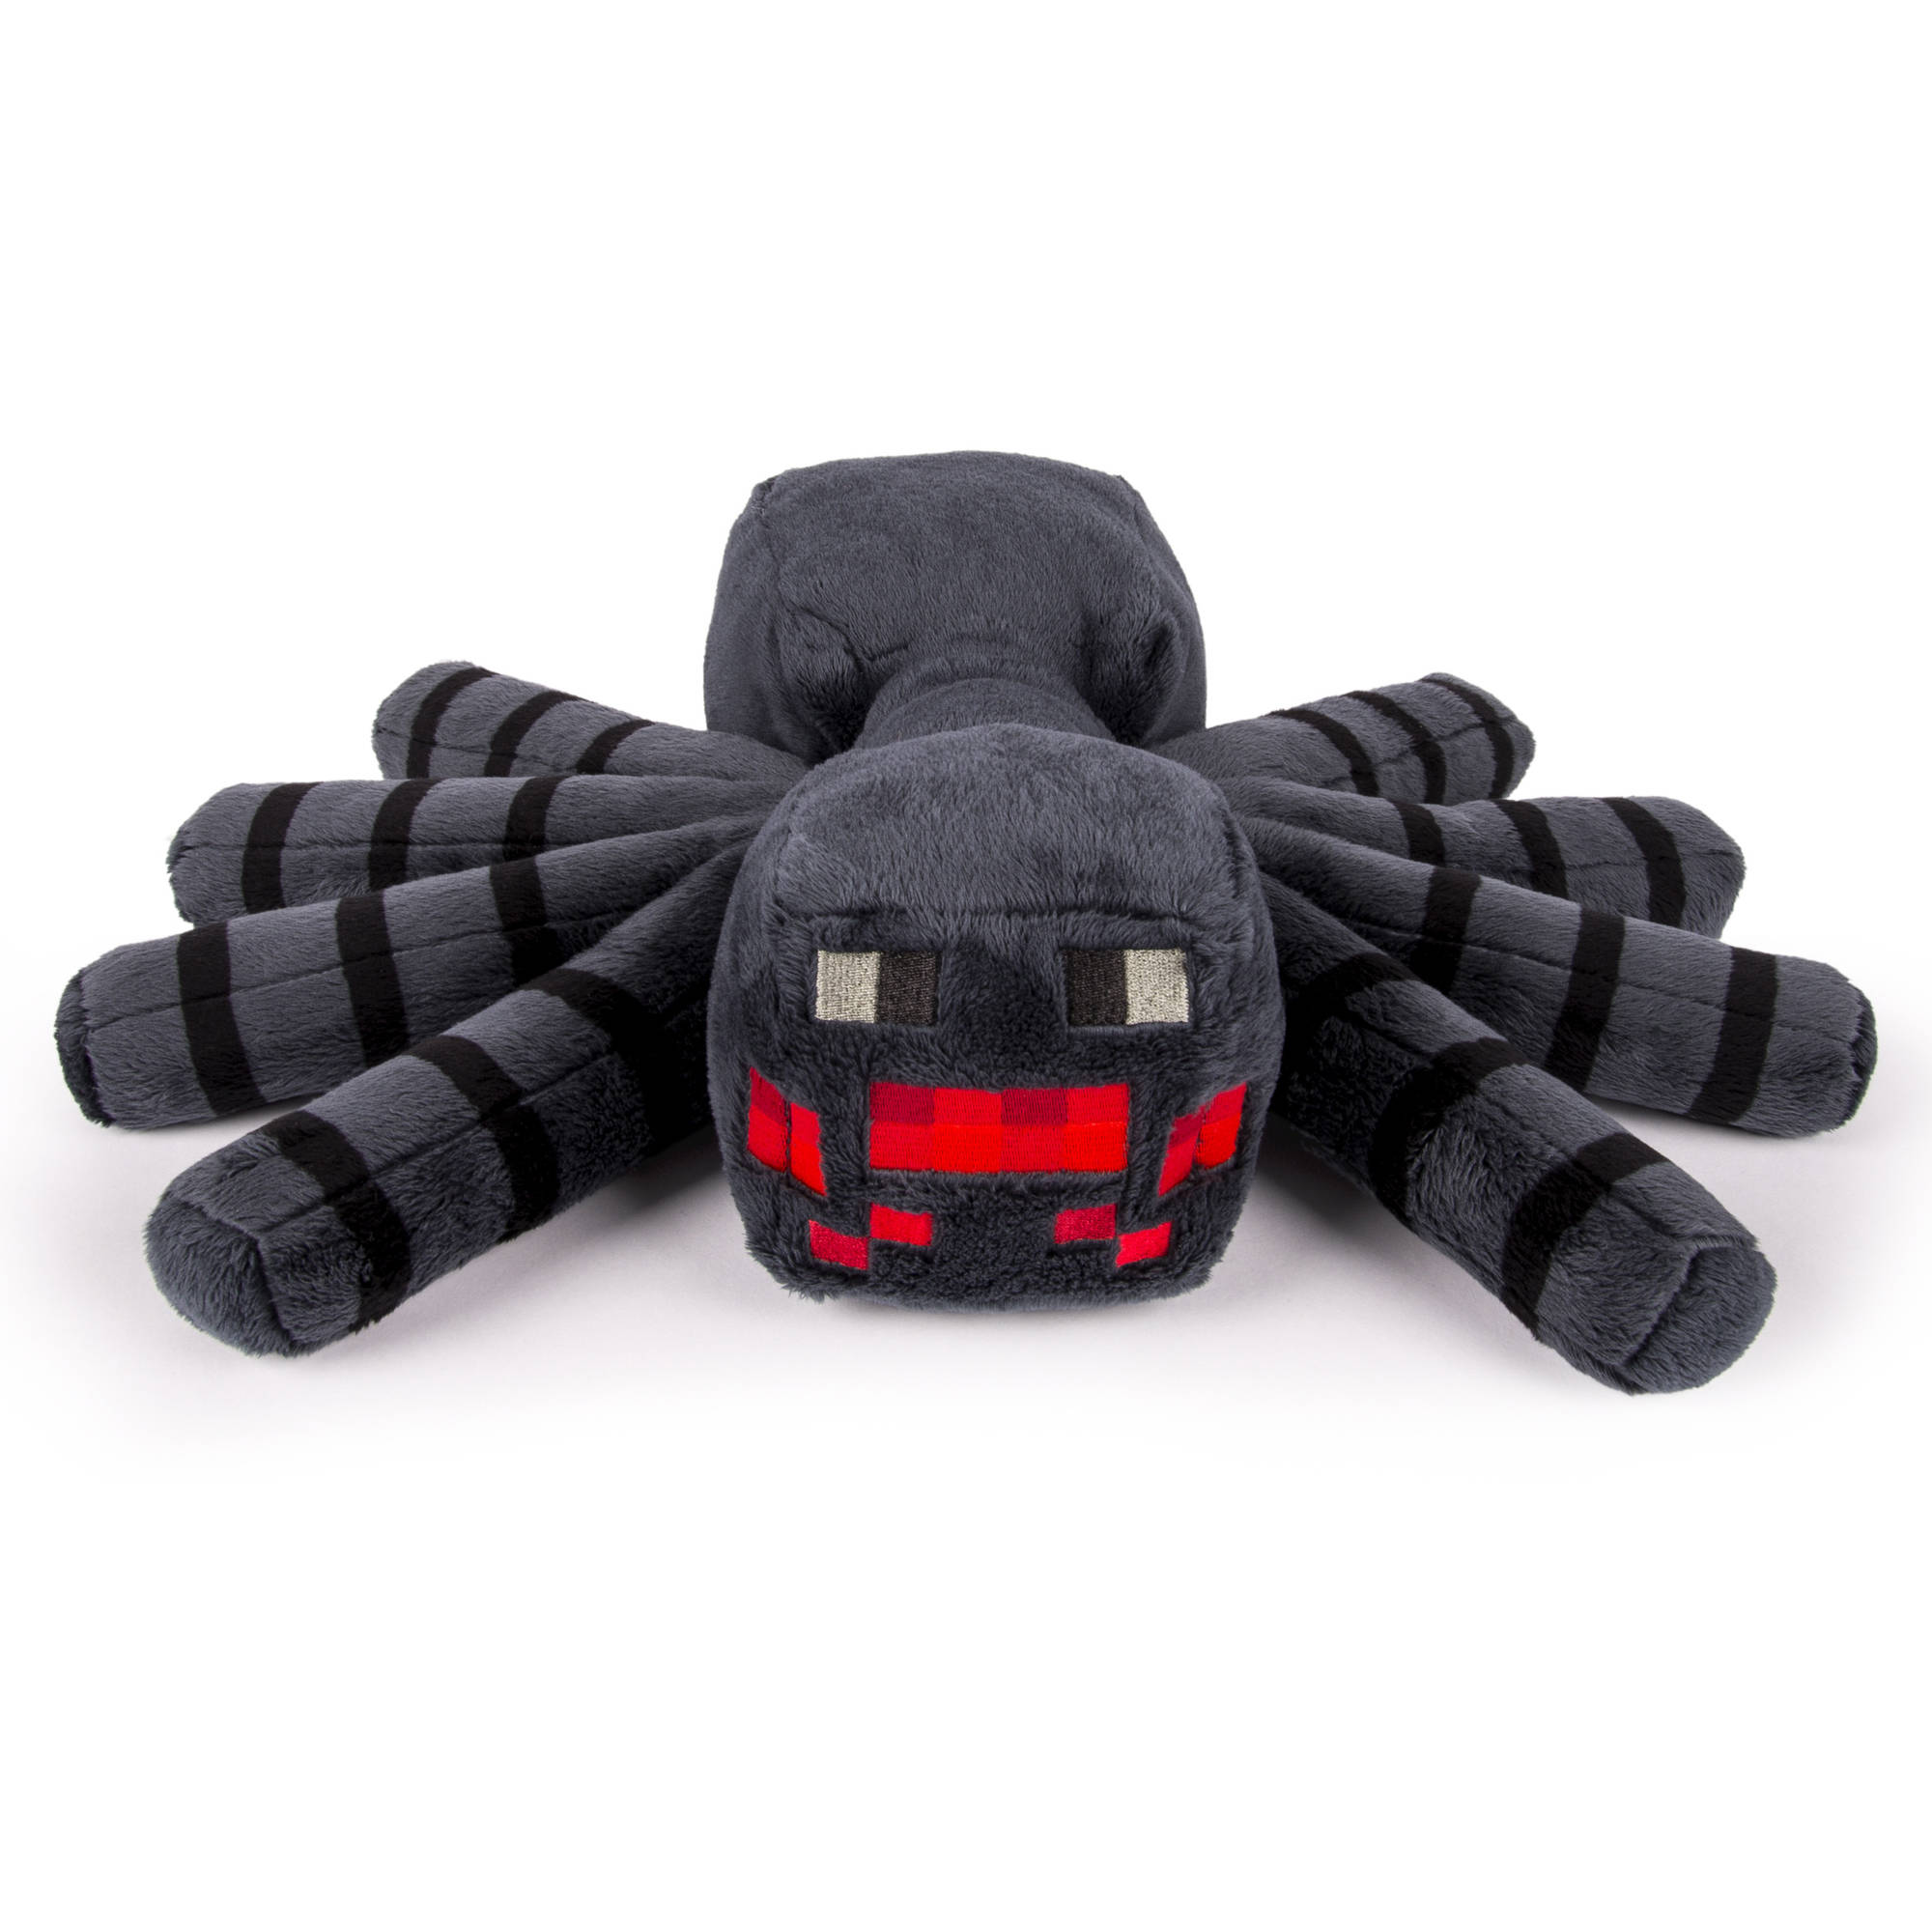 Minecraft Large Plush, Spider